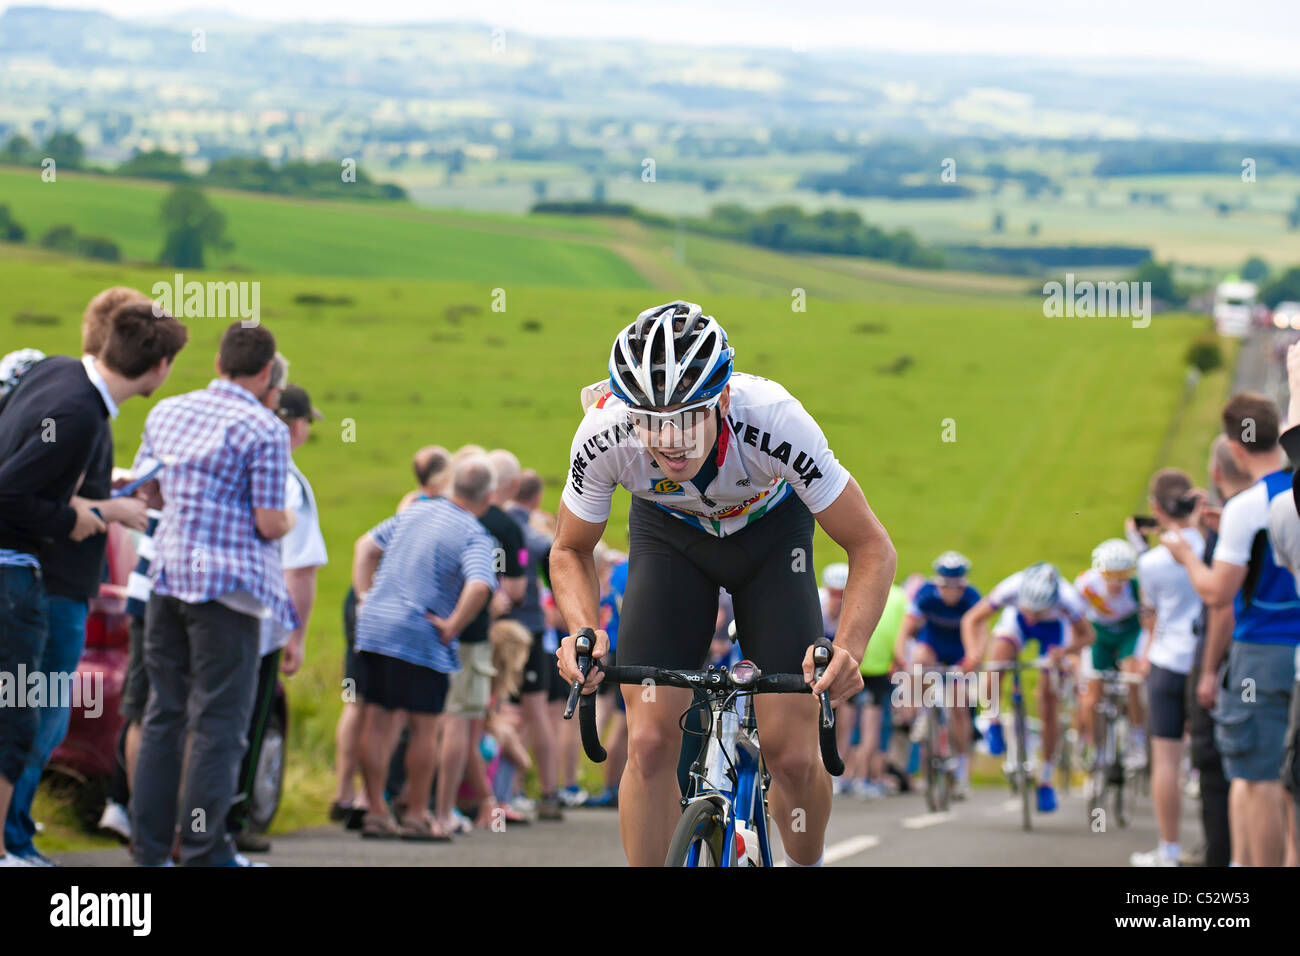 Matt Jones from Team Raleigh climbing the Ryals in Northumberland during the British National road cycling championship - Stock Image